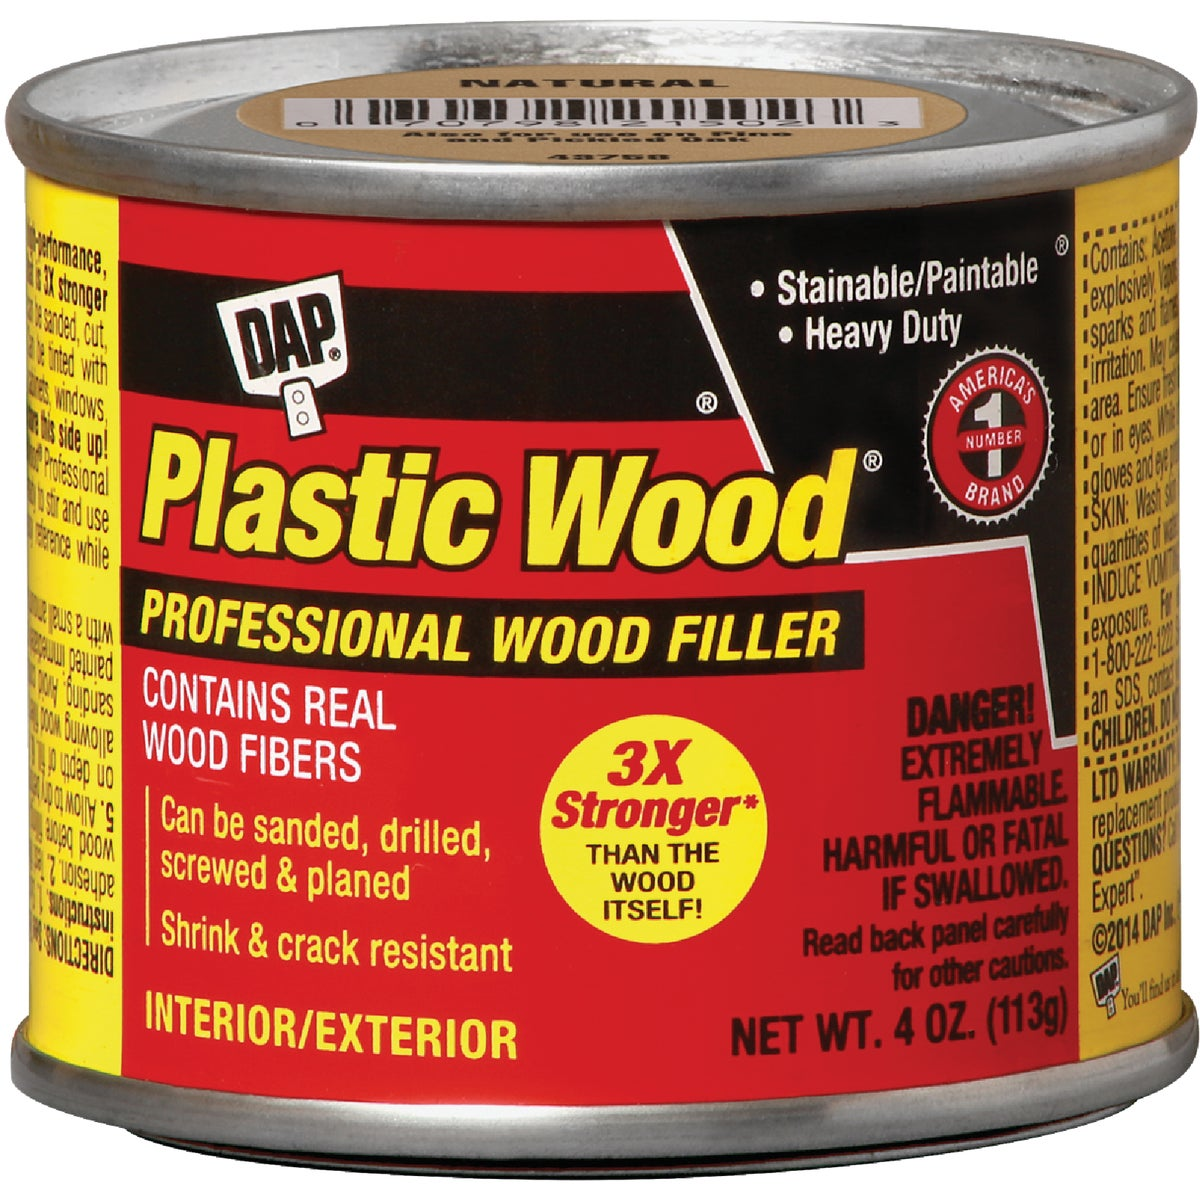 4OZ LT OAK PLASTIC WOOD - 21400 by Dap Inc